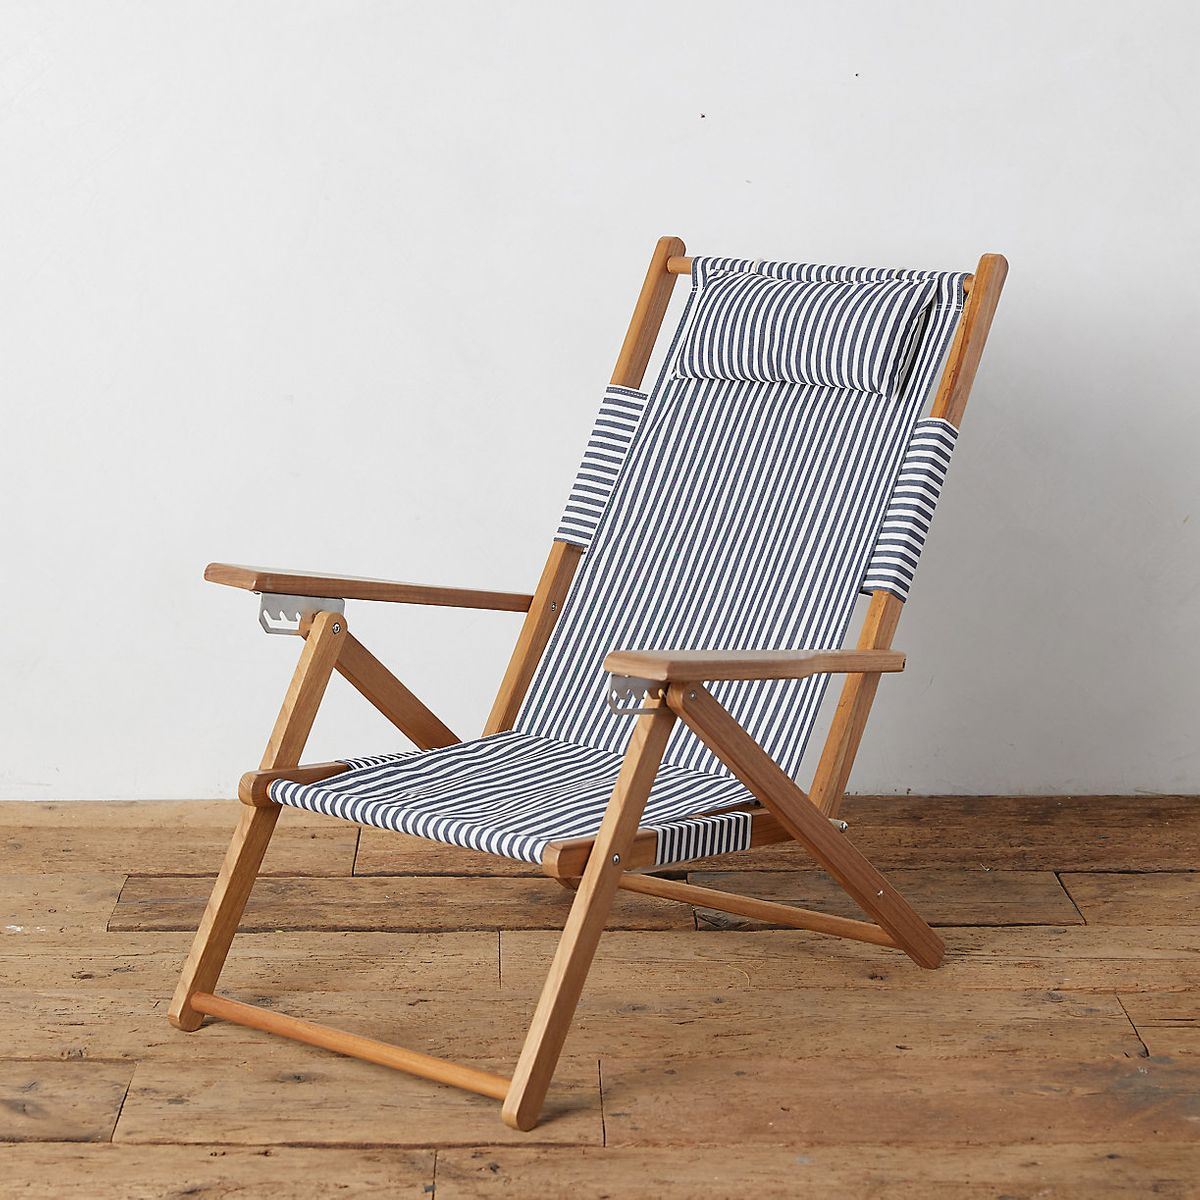 Folding wooden lounge chair with striped fabric seating.